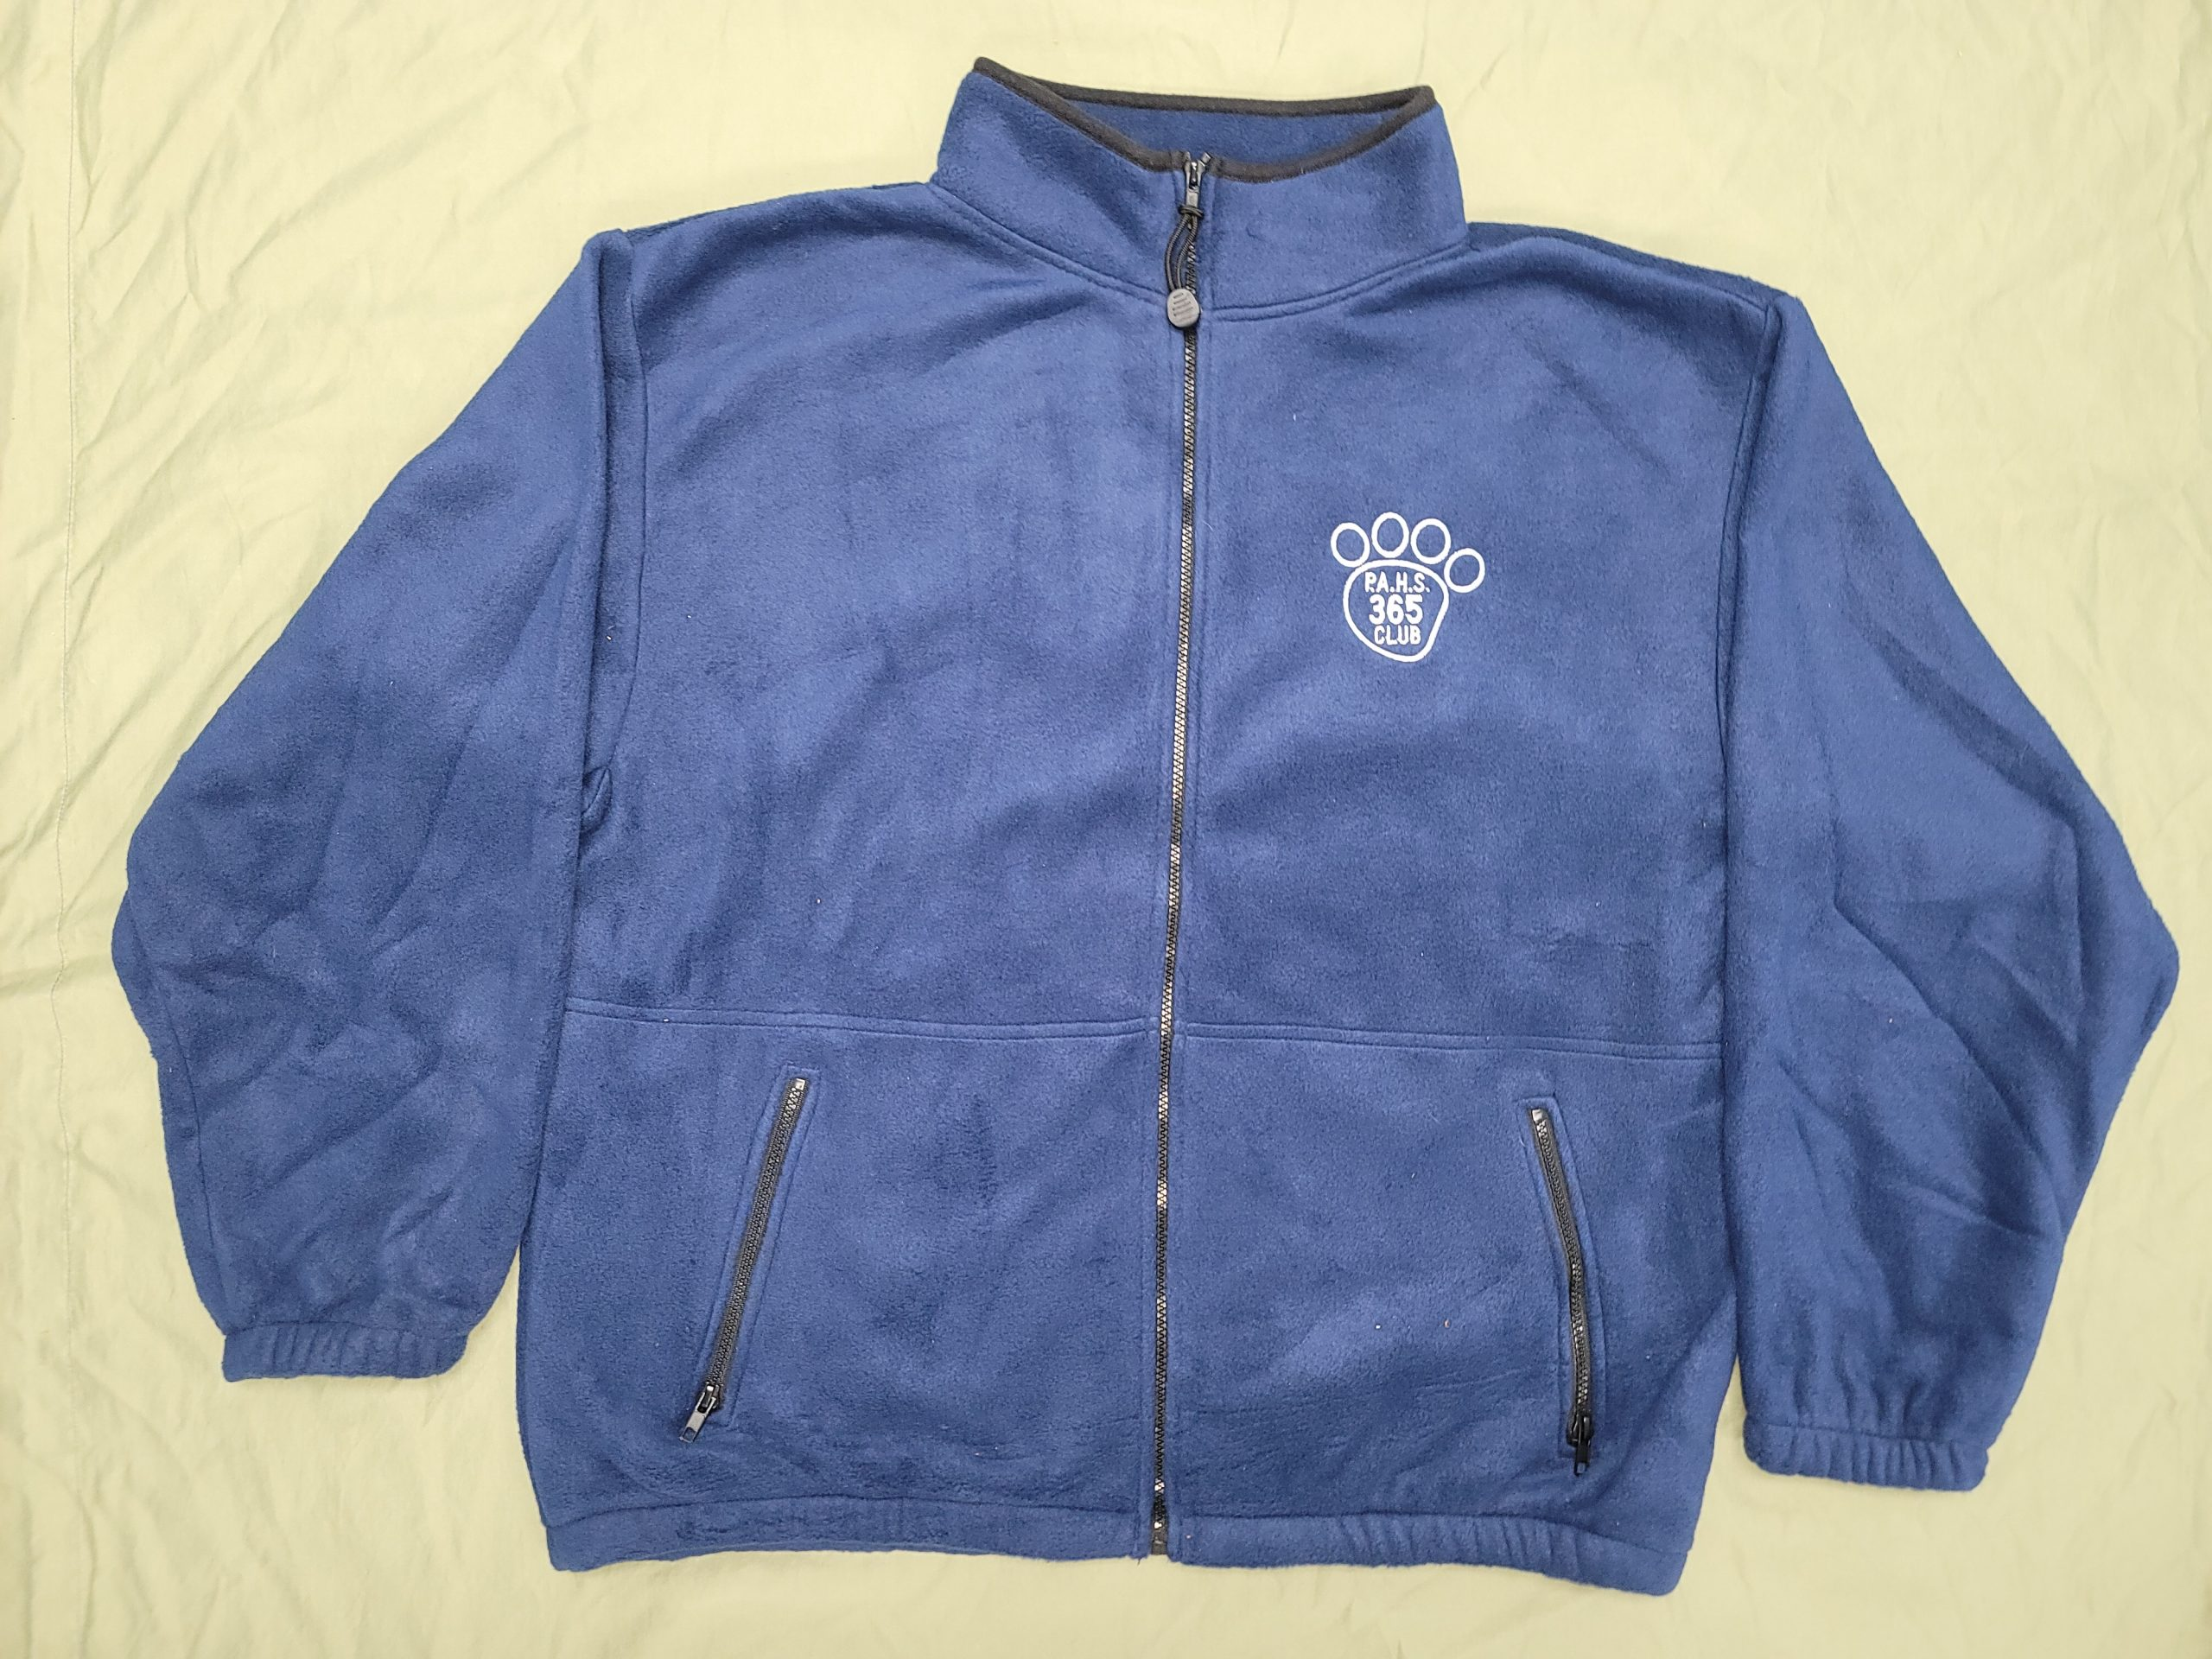 Embroidered PAHS Fleece for 365 Members